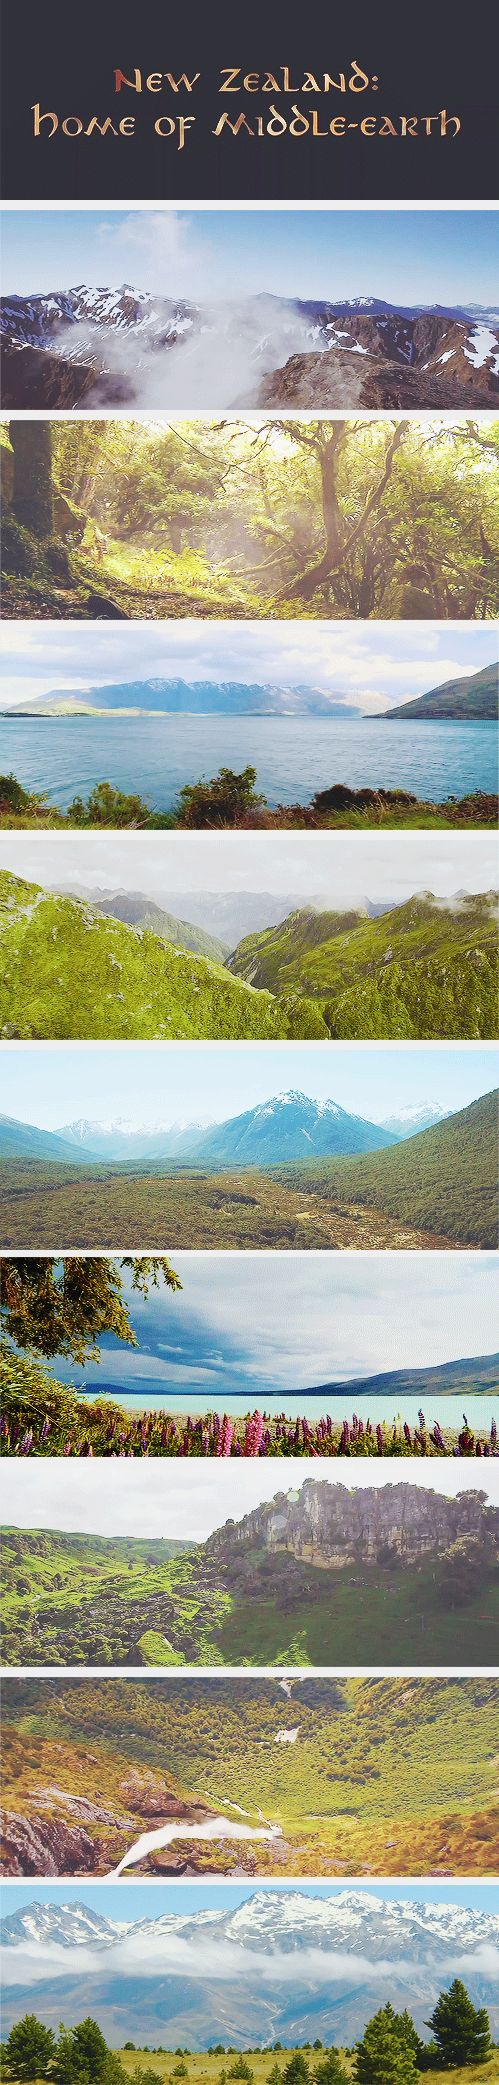 (gif set) New Zealand: Home of Middle Earth. That's it! Road trip right now!!!